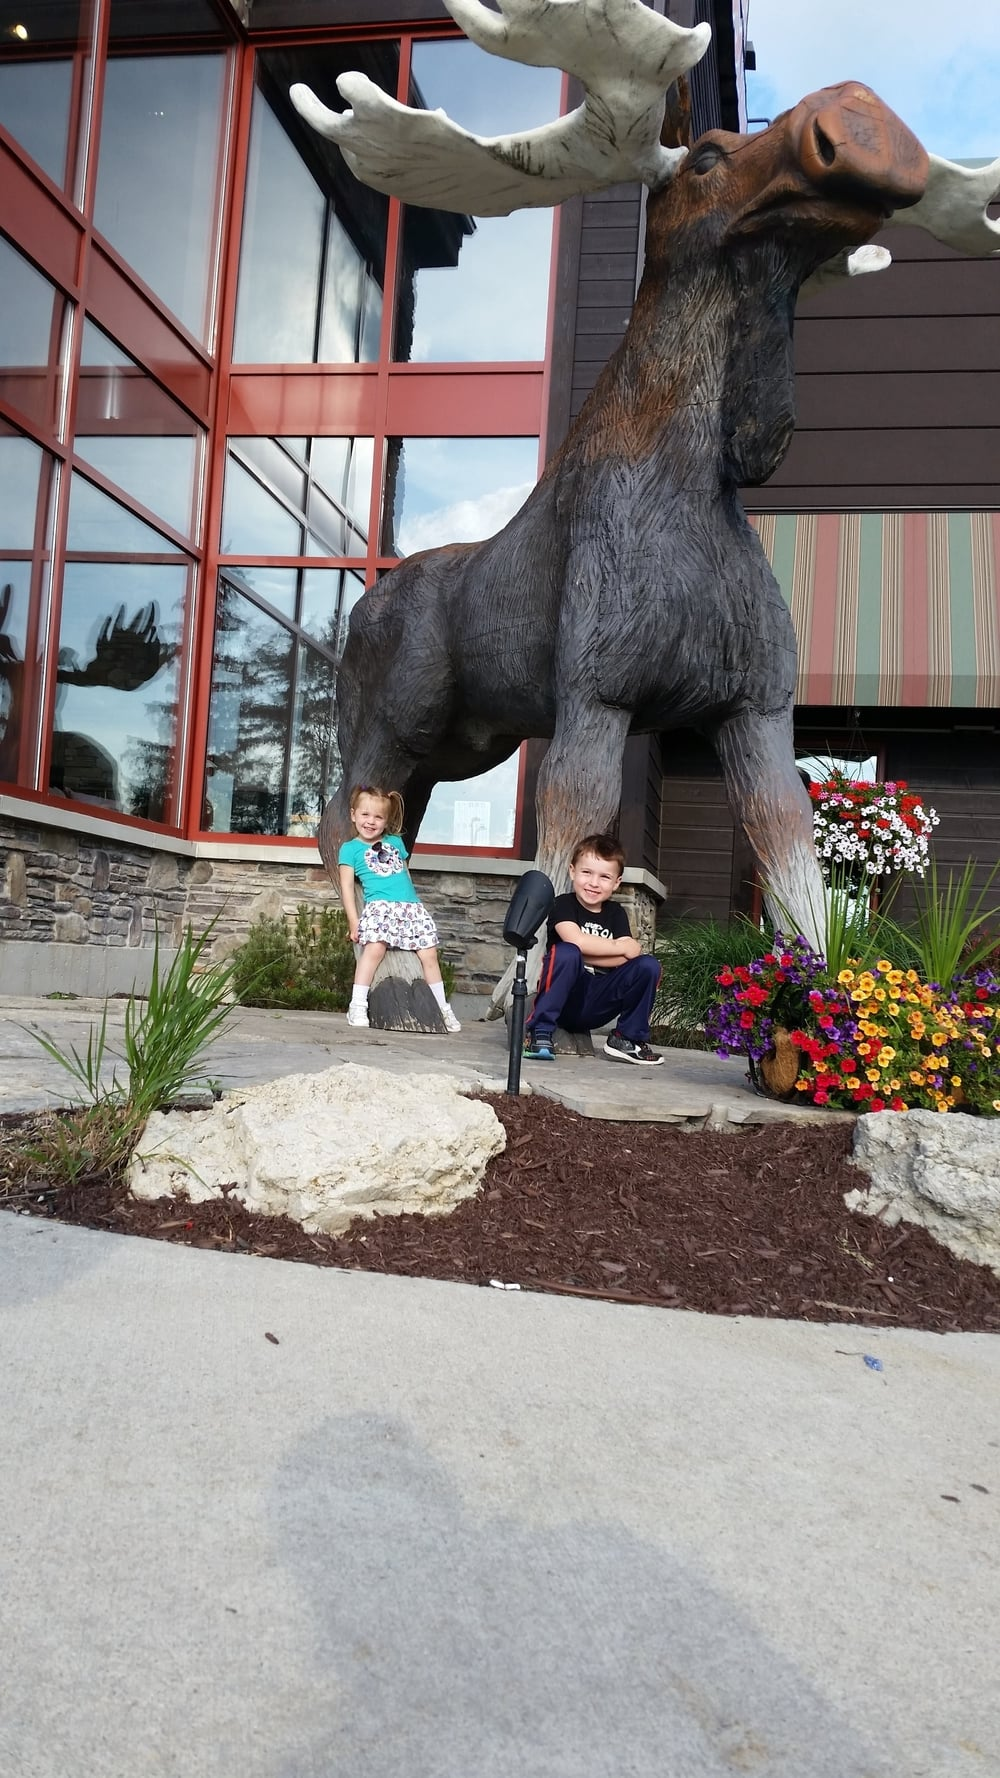 The kids with the moose himself, outside Moose Winooski's Kitchener, a proud carrier of SCS products.